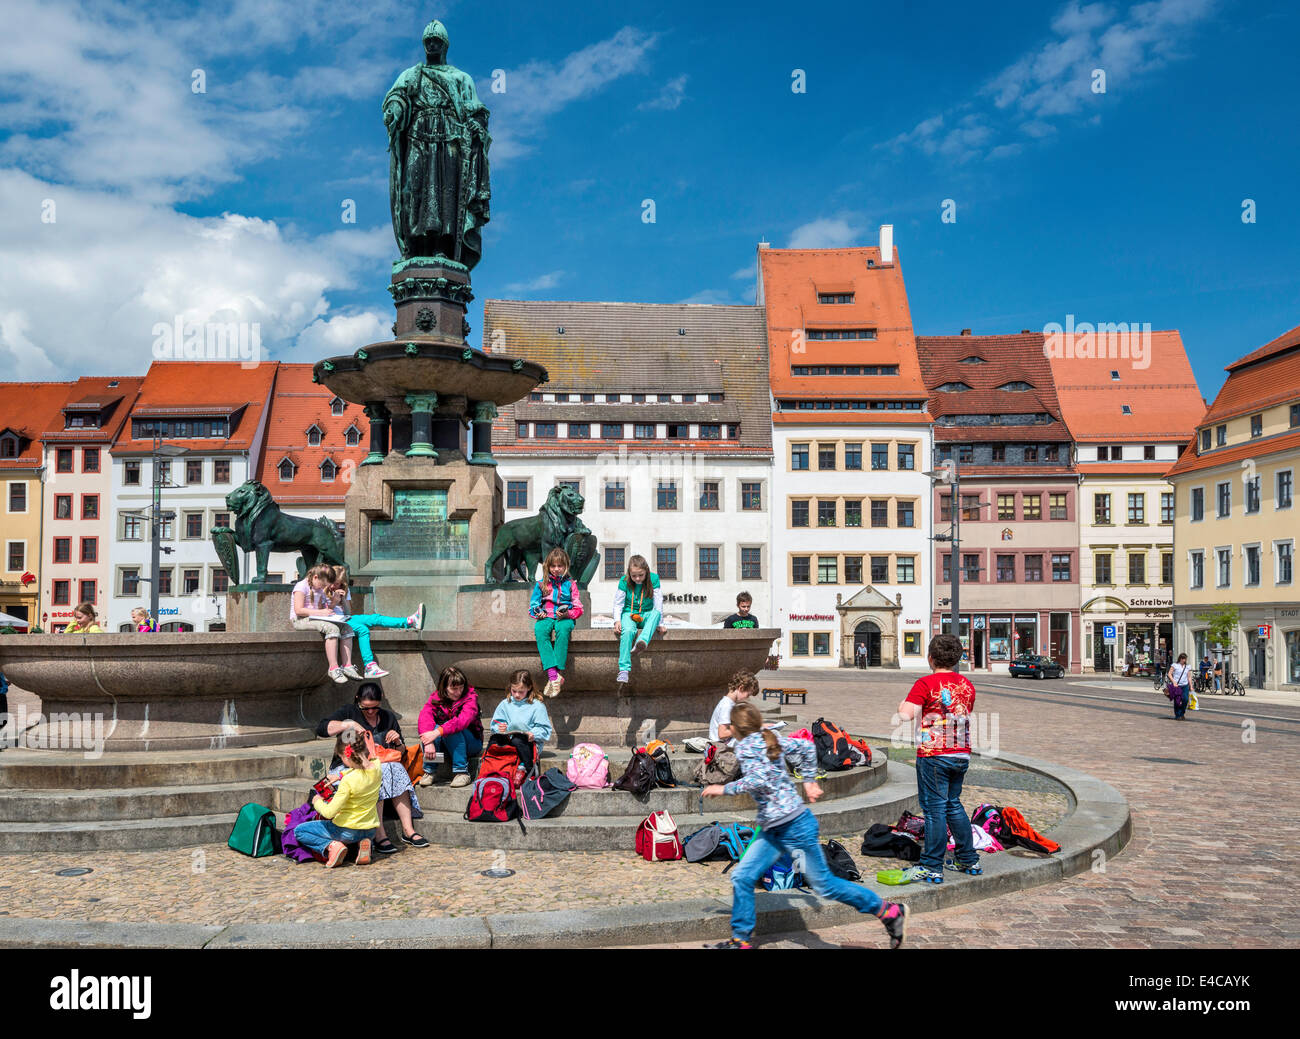 Children at statue of Margrave of Meissen Otto Der Reiche (Otto the Rich), Obermarkt (Upper Market) in Freiberg, - Stock Image